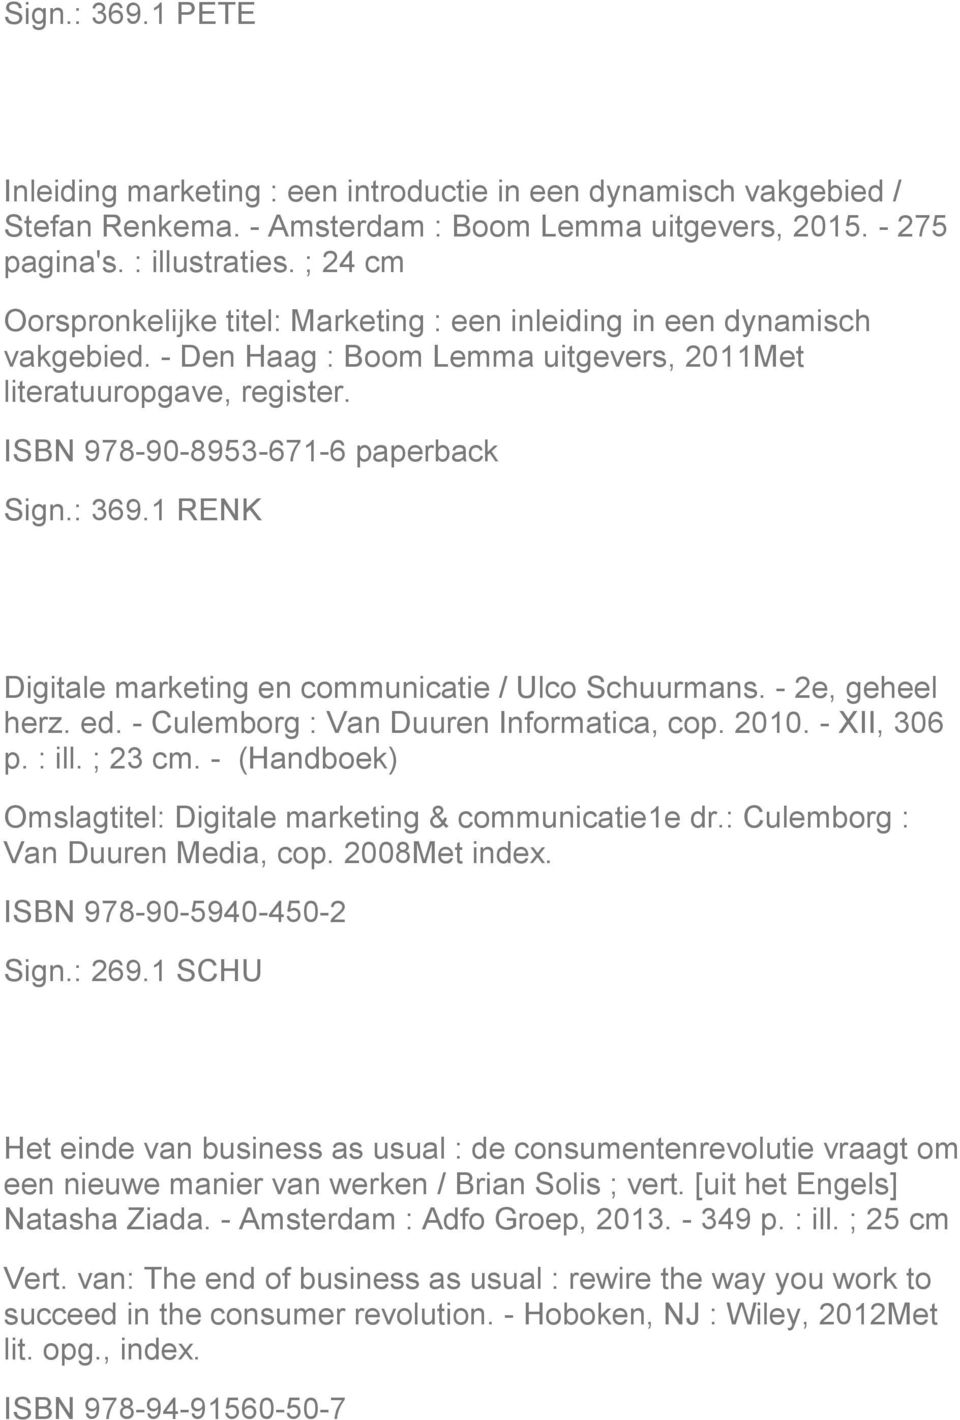 1 RENK Digitale marketing en communicatie / Ulco Schuurmans. - 2e, geheel herz. ed. - Culemborg : Van Duuren Informatica, cop. 2010. - XII, 306 p. : ill. ; 23 cm.